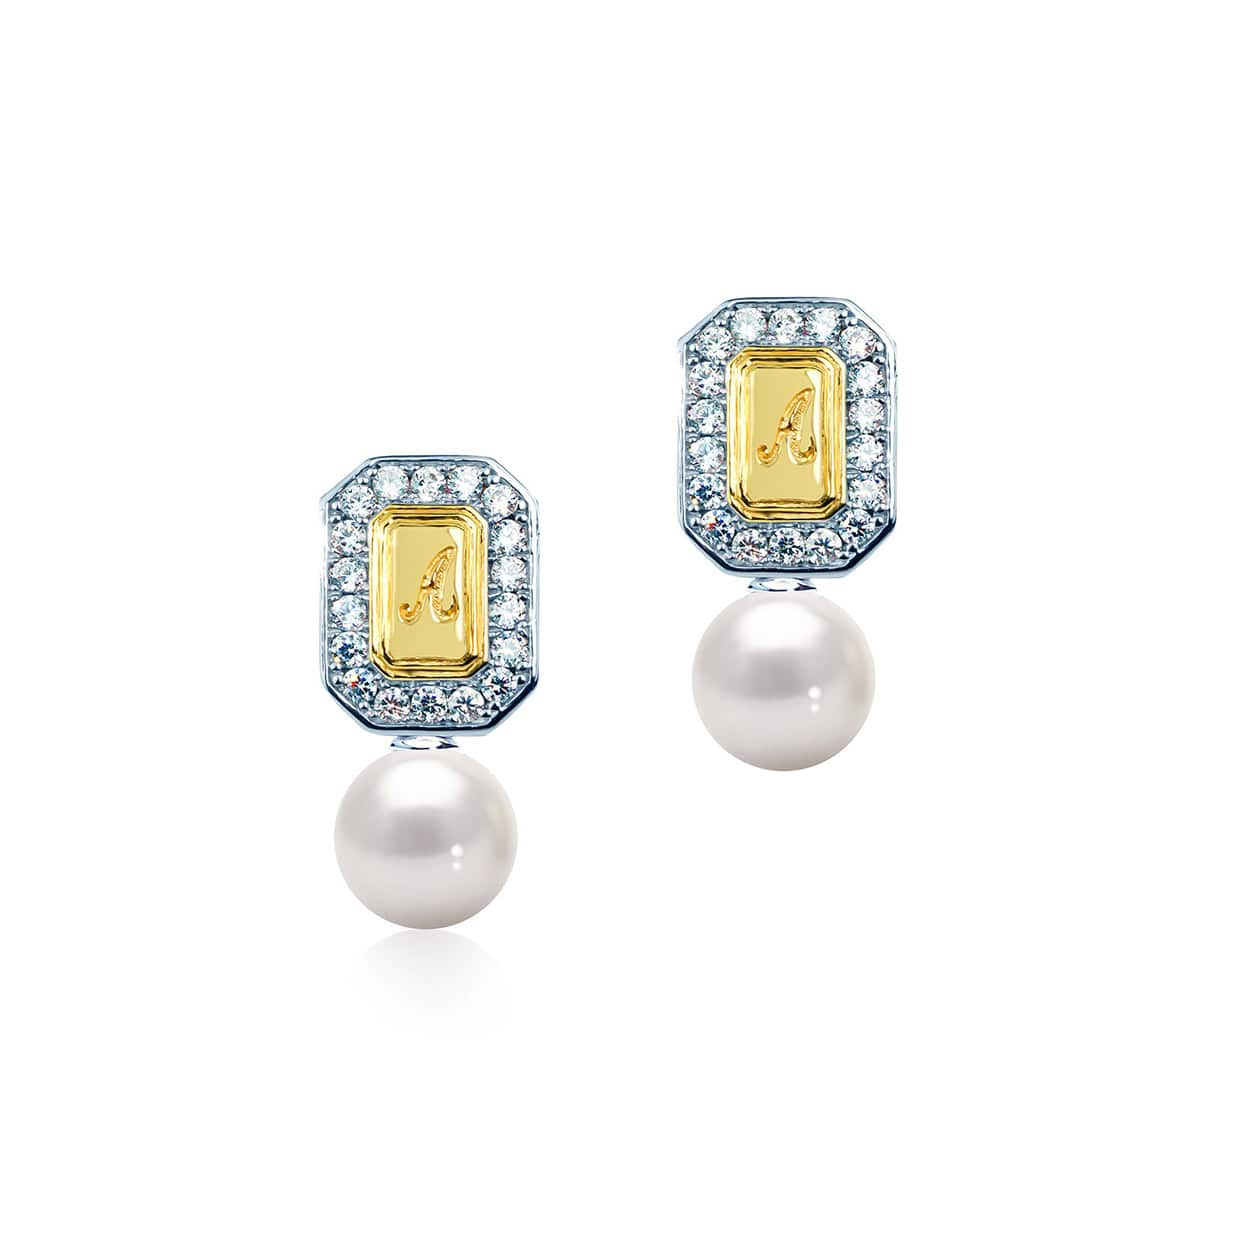 Abelstedt A Gold & Silver Freshwater Pearl Earrings